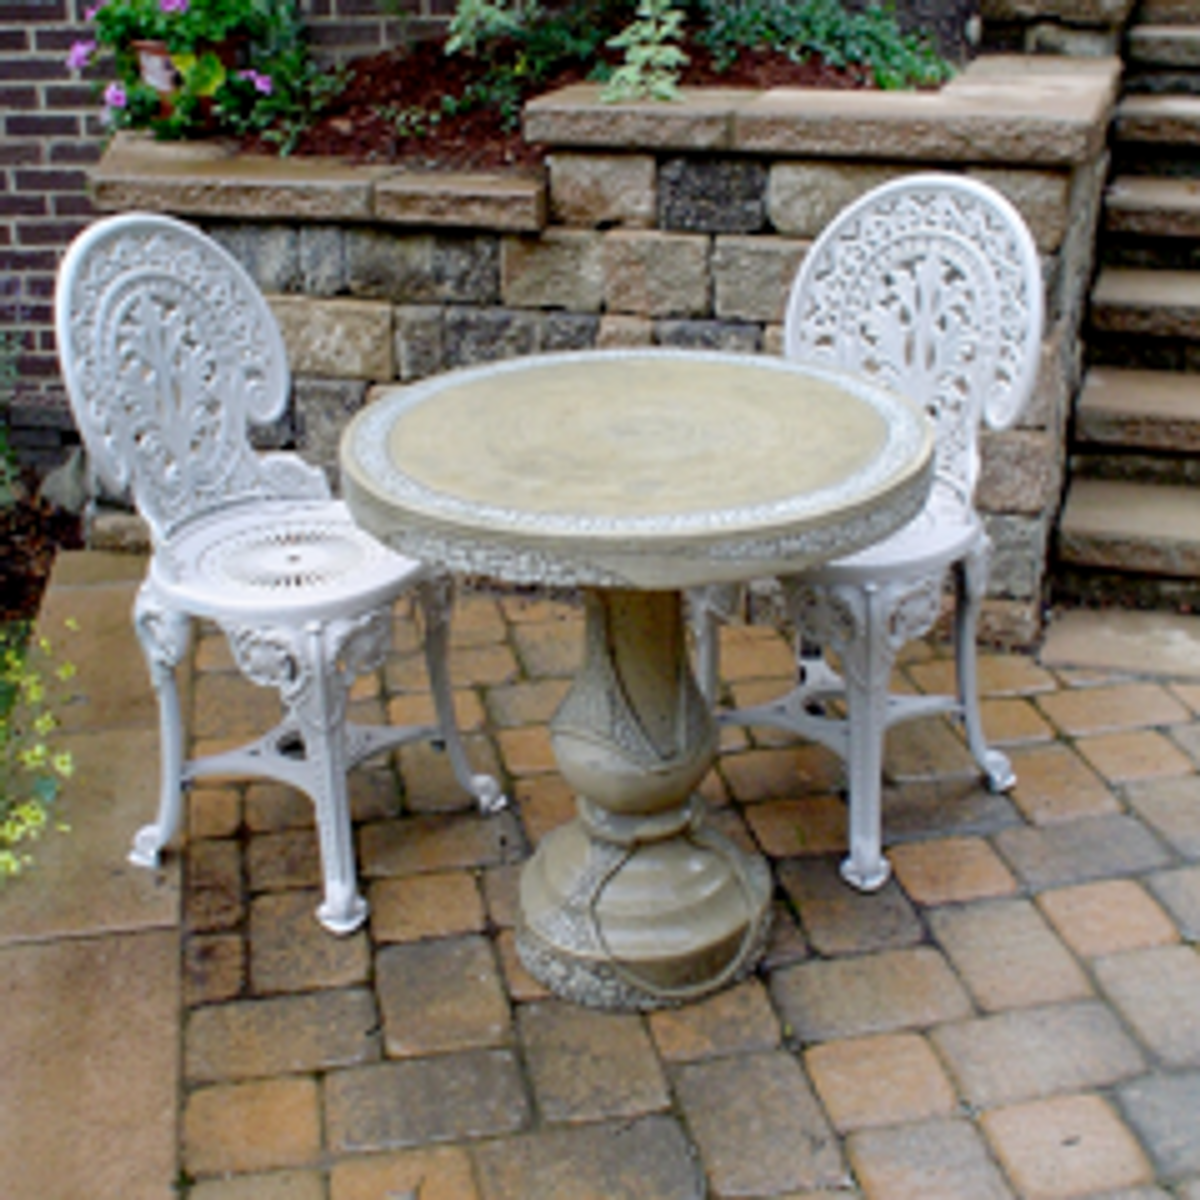 Cement outdoor patio table, This patio table is the perfect size for morning coffee and makes a great bistro set! Surprisingly compatible with so many styles of furniture & decor.  • 2 Piece Patio Table • Made of Glass Fiber Reinforced Concrete (GFRC) • Multiple colors available (color Sandstone - SS)